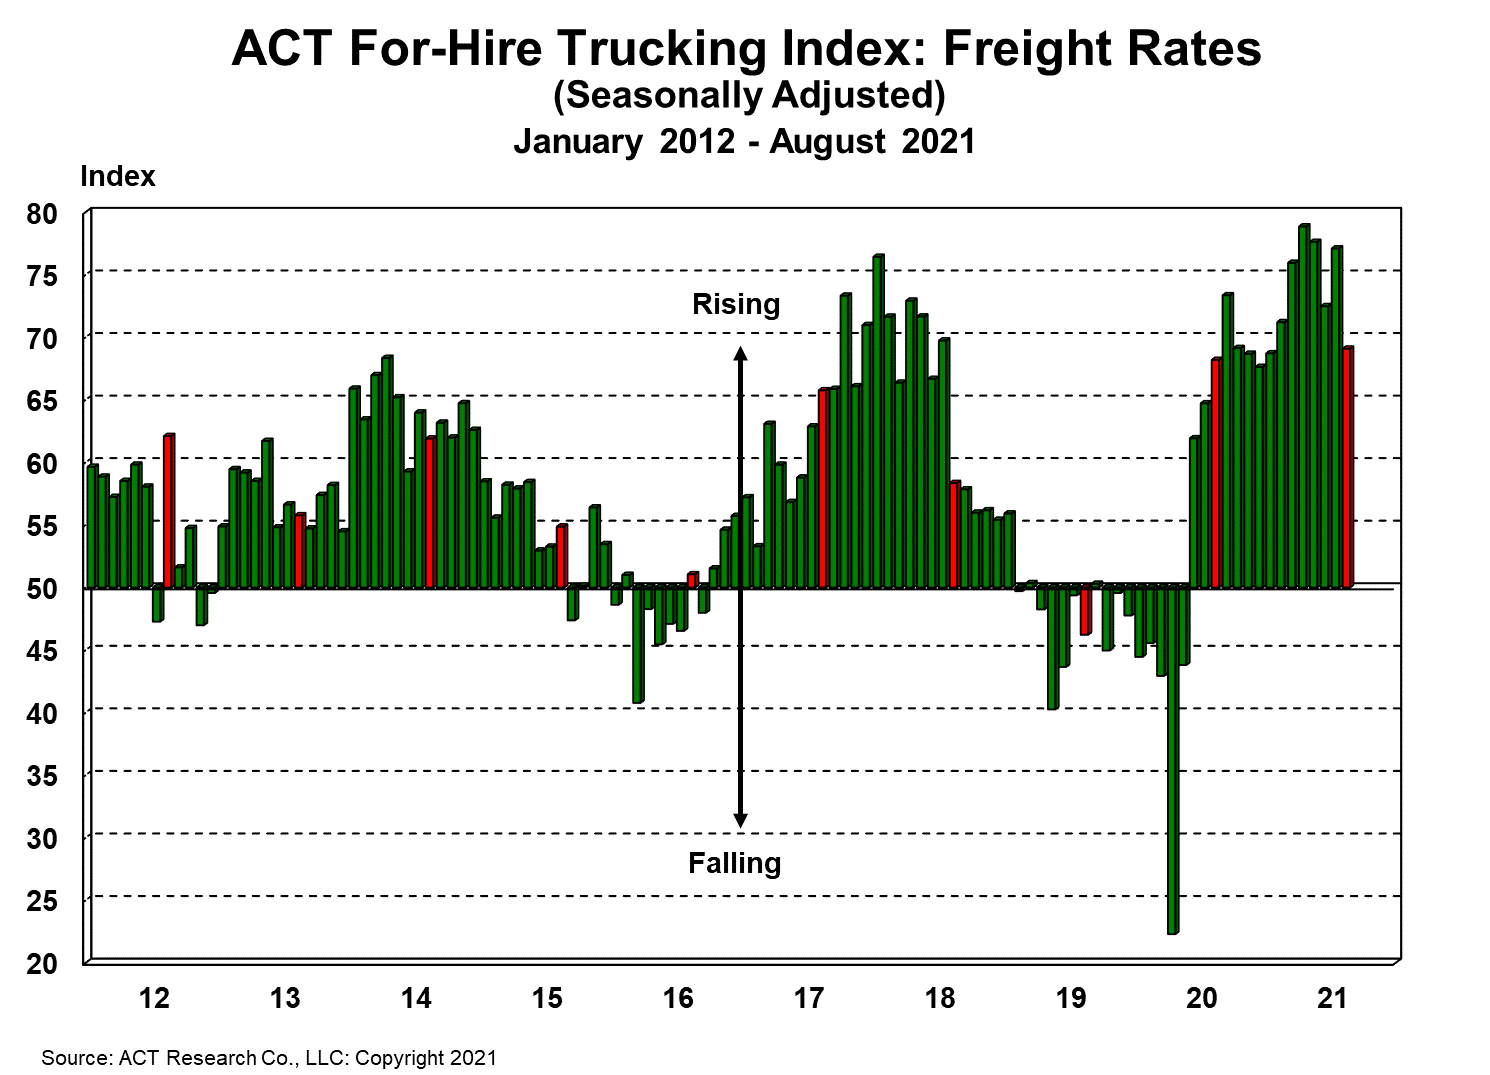 For-Hire Freight Rates 9-28-21